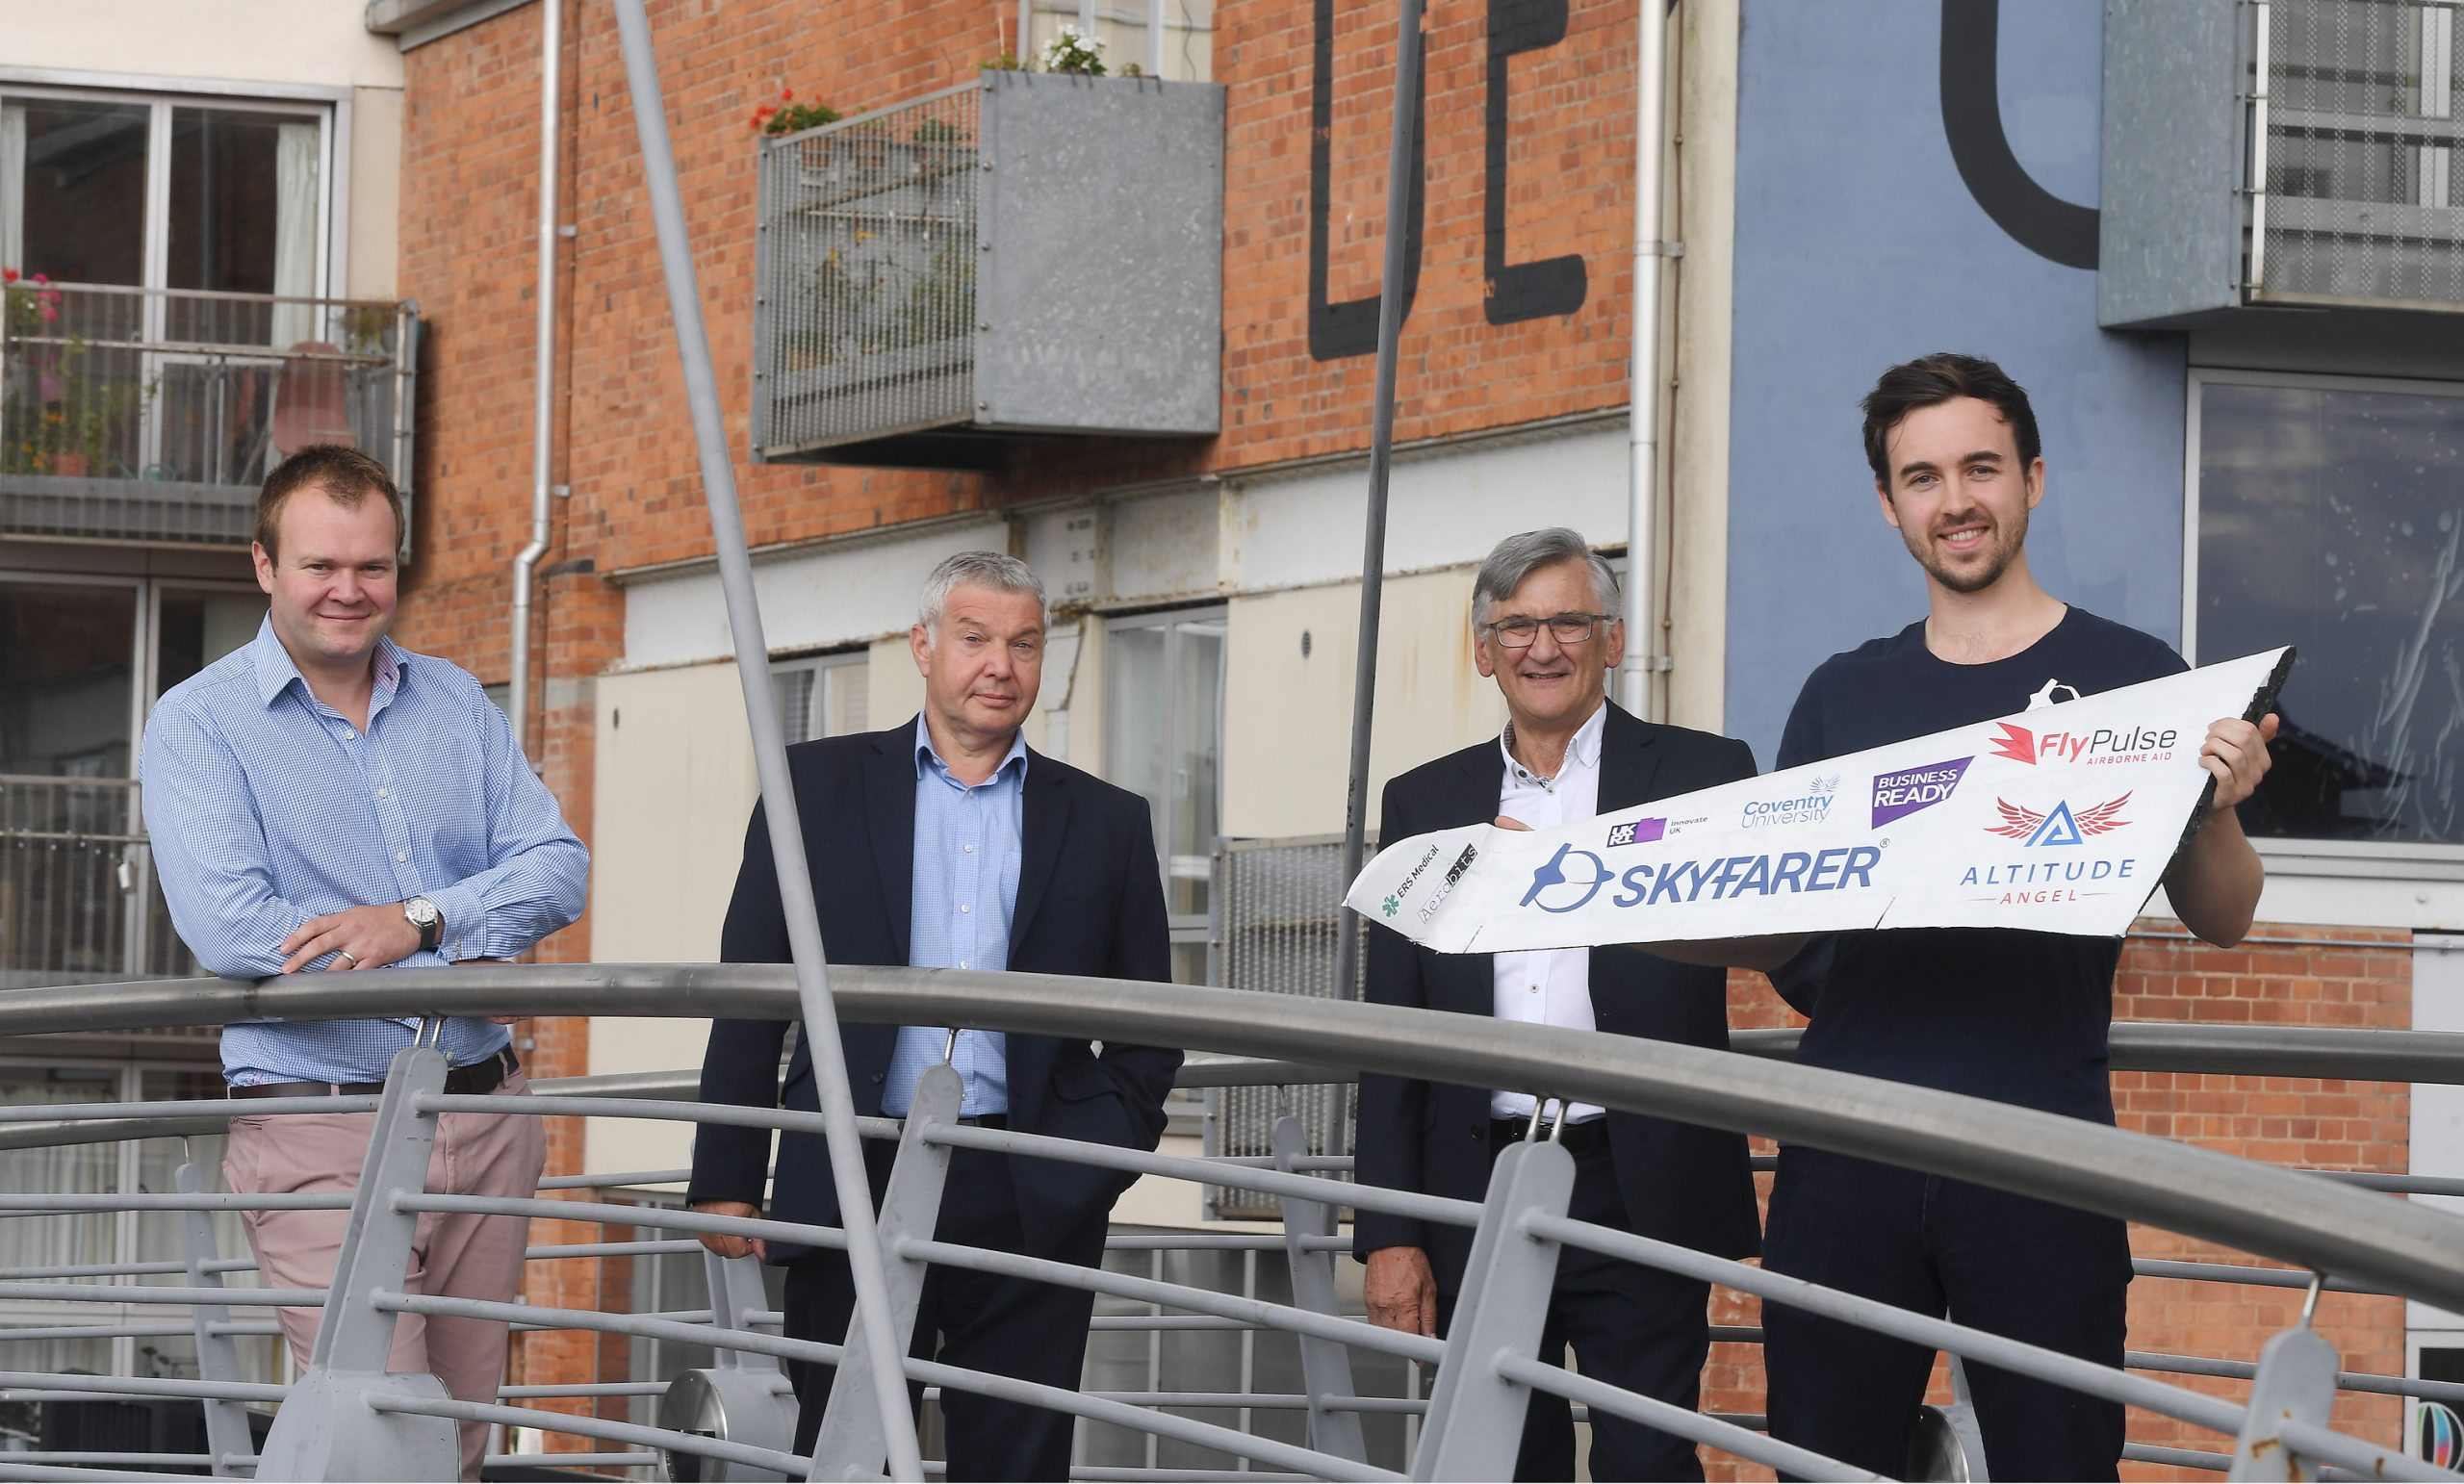 Drone company set to fly after Business Ready support